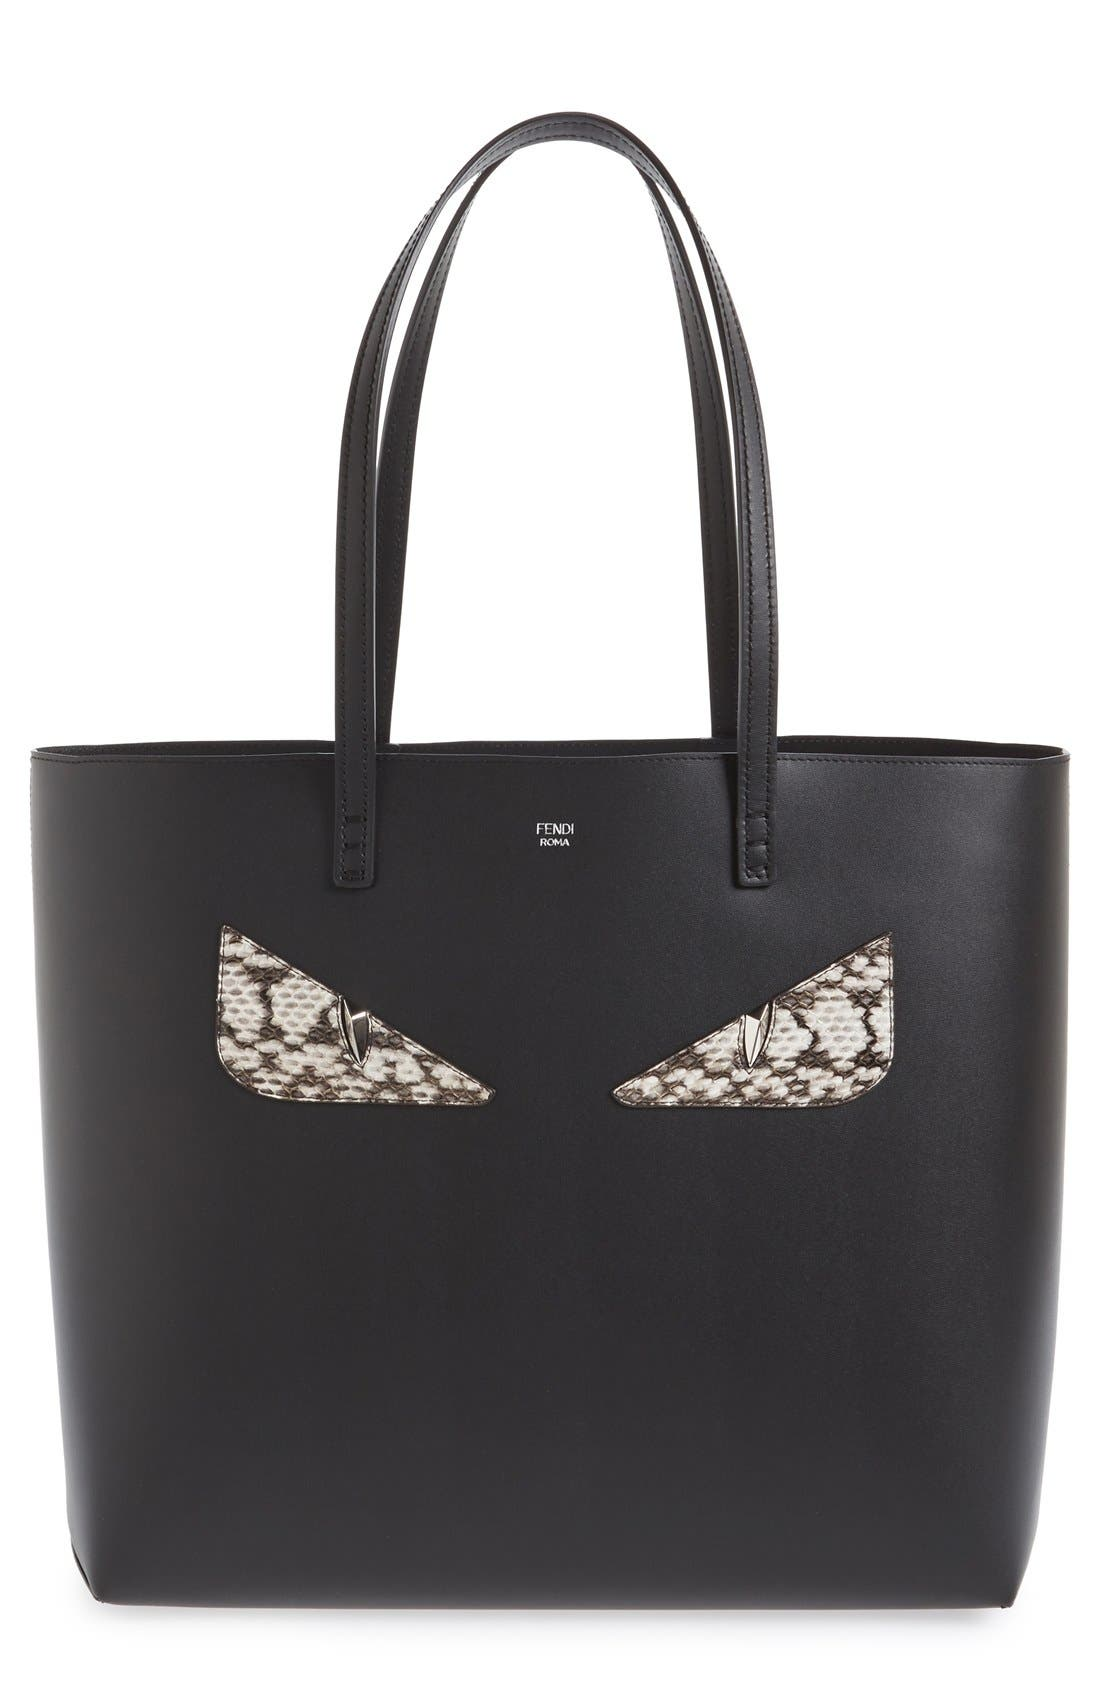 FENDI 'Roll - Monster' Genuine Snakeskin Trim Leather